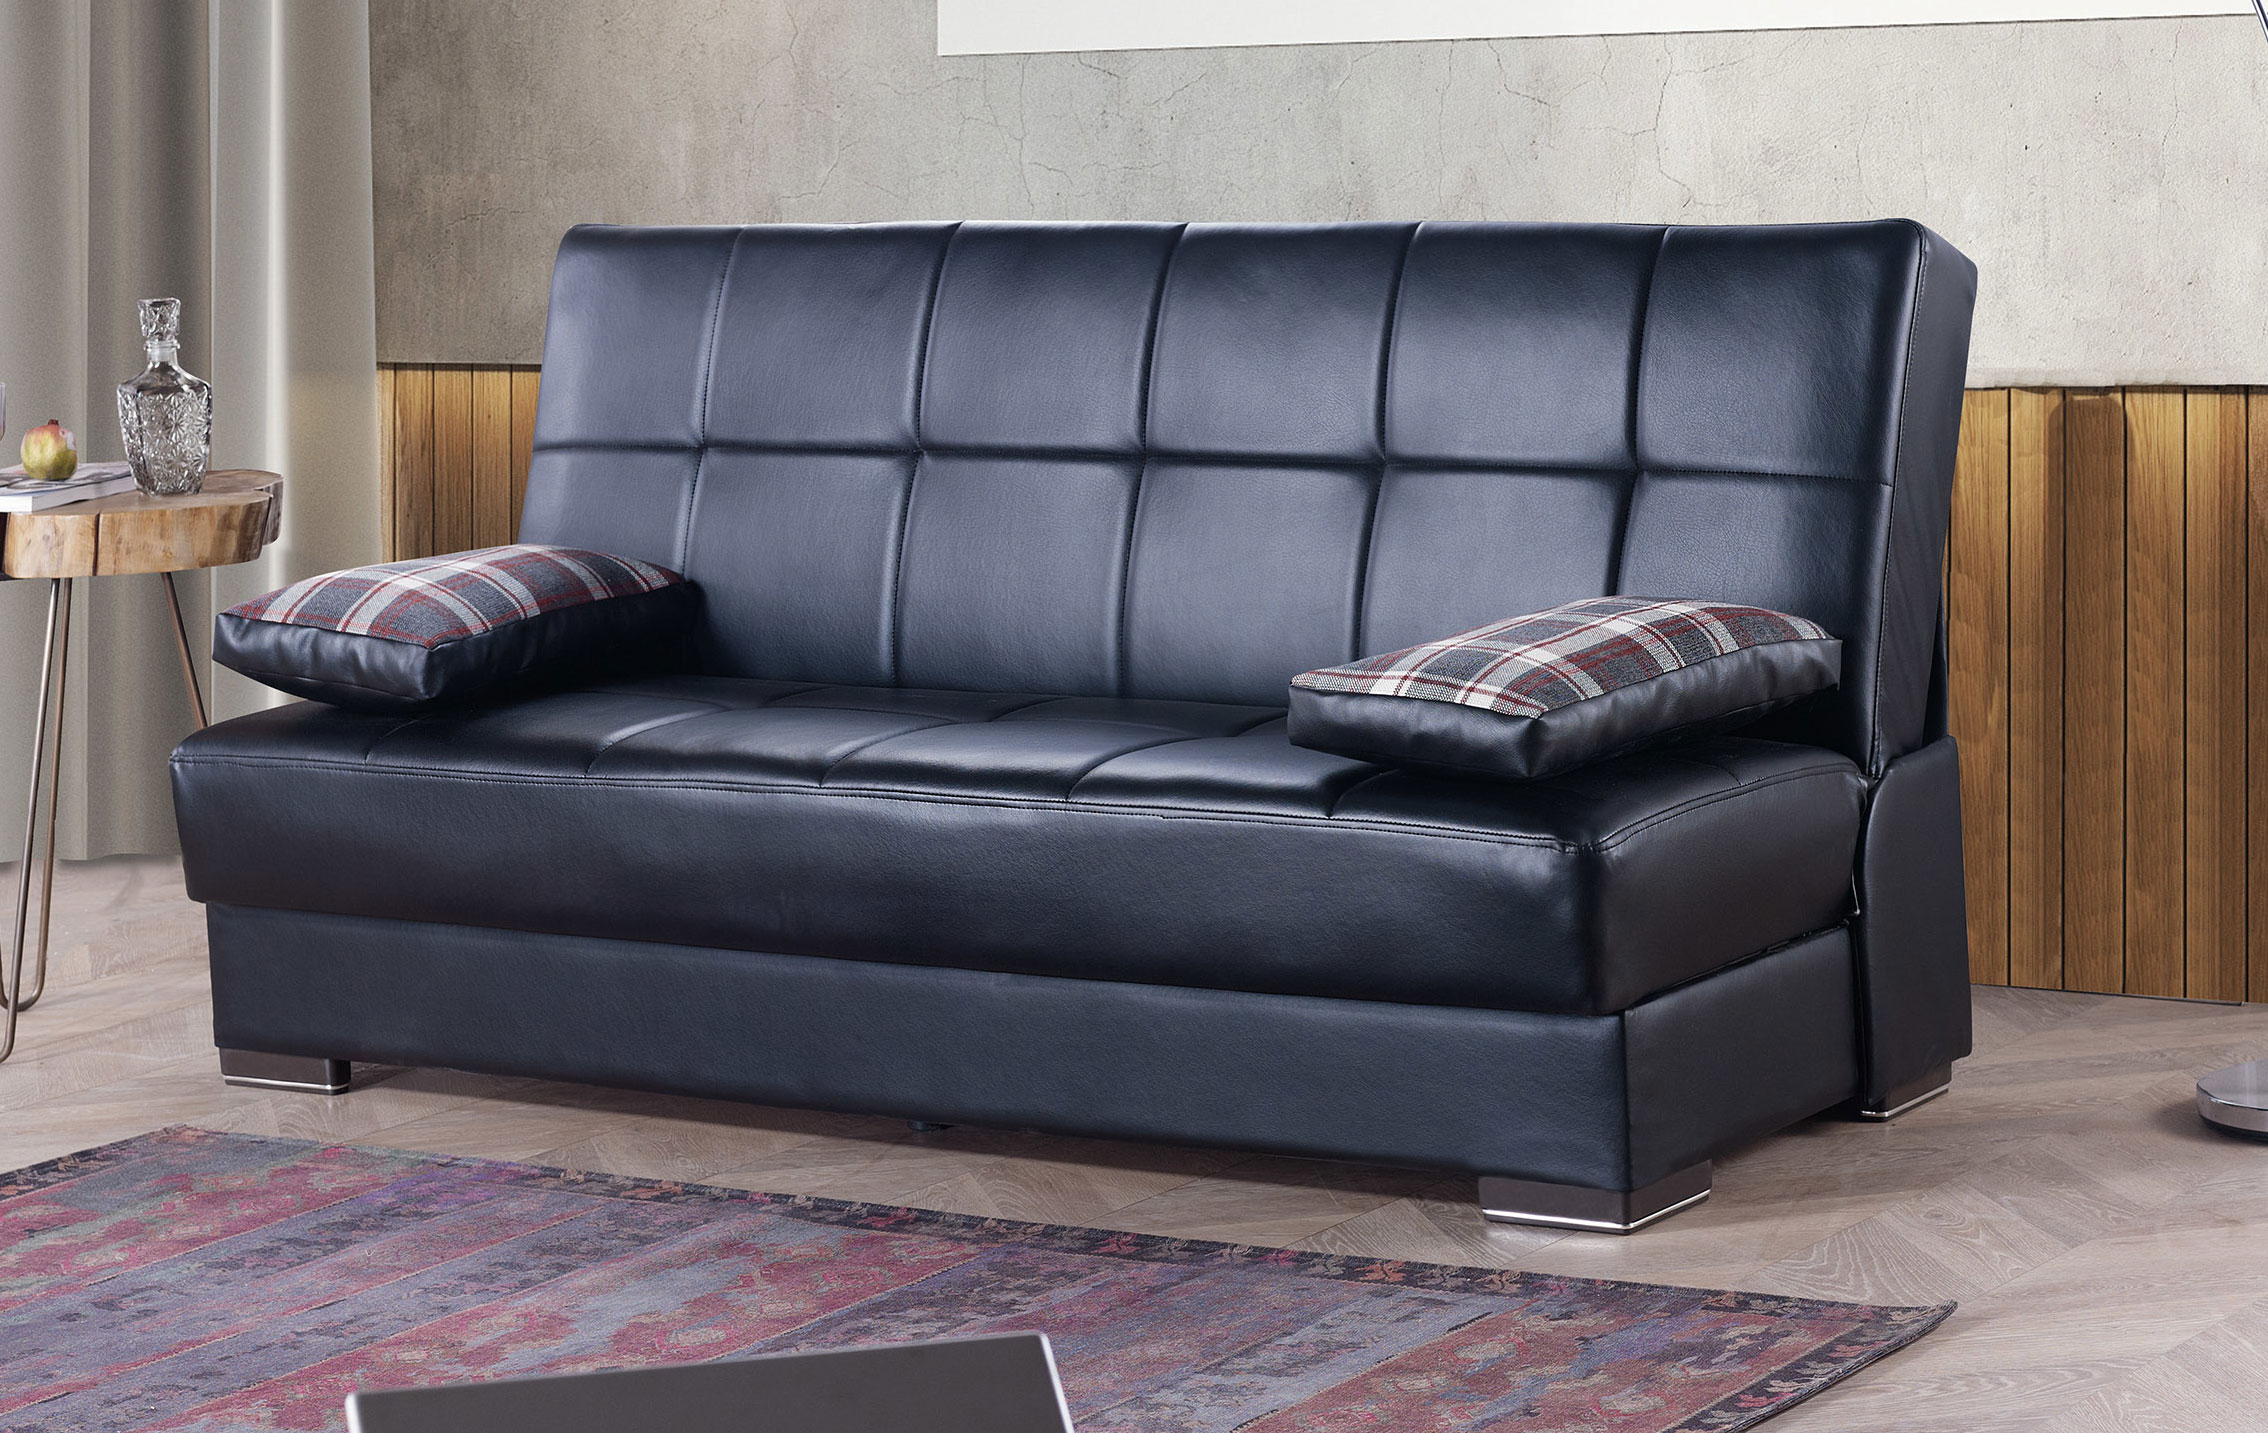 Soho Black PU Leather Convertible Sofa Bed by Casamode